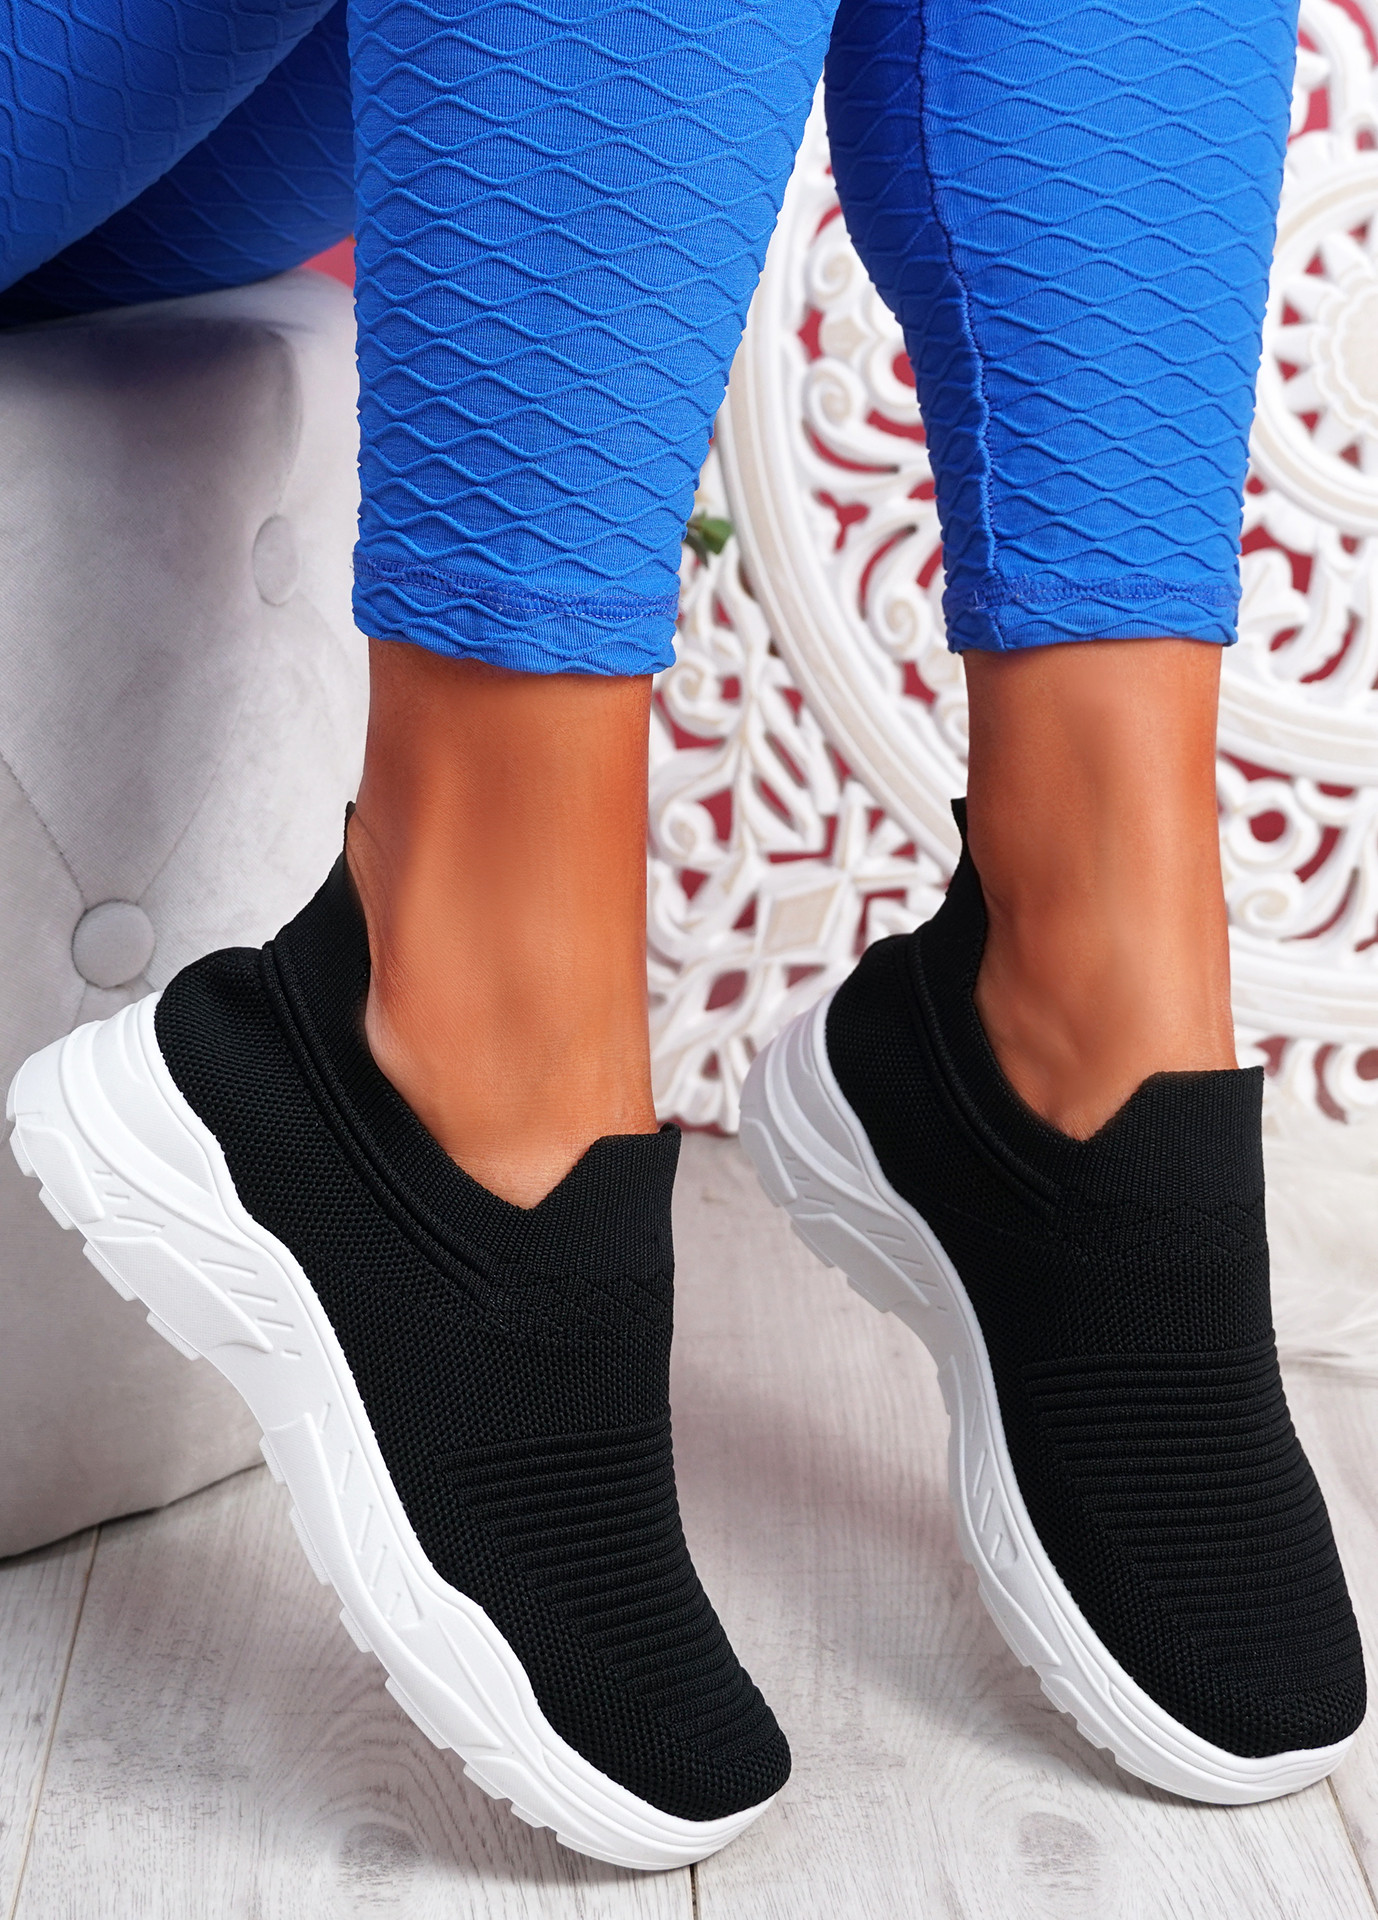 Noxy Black Slip On Knit Trainers